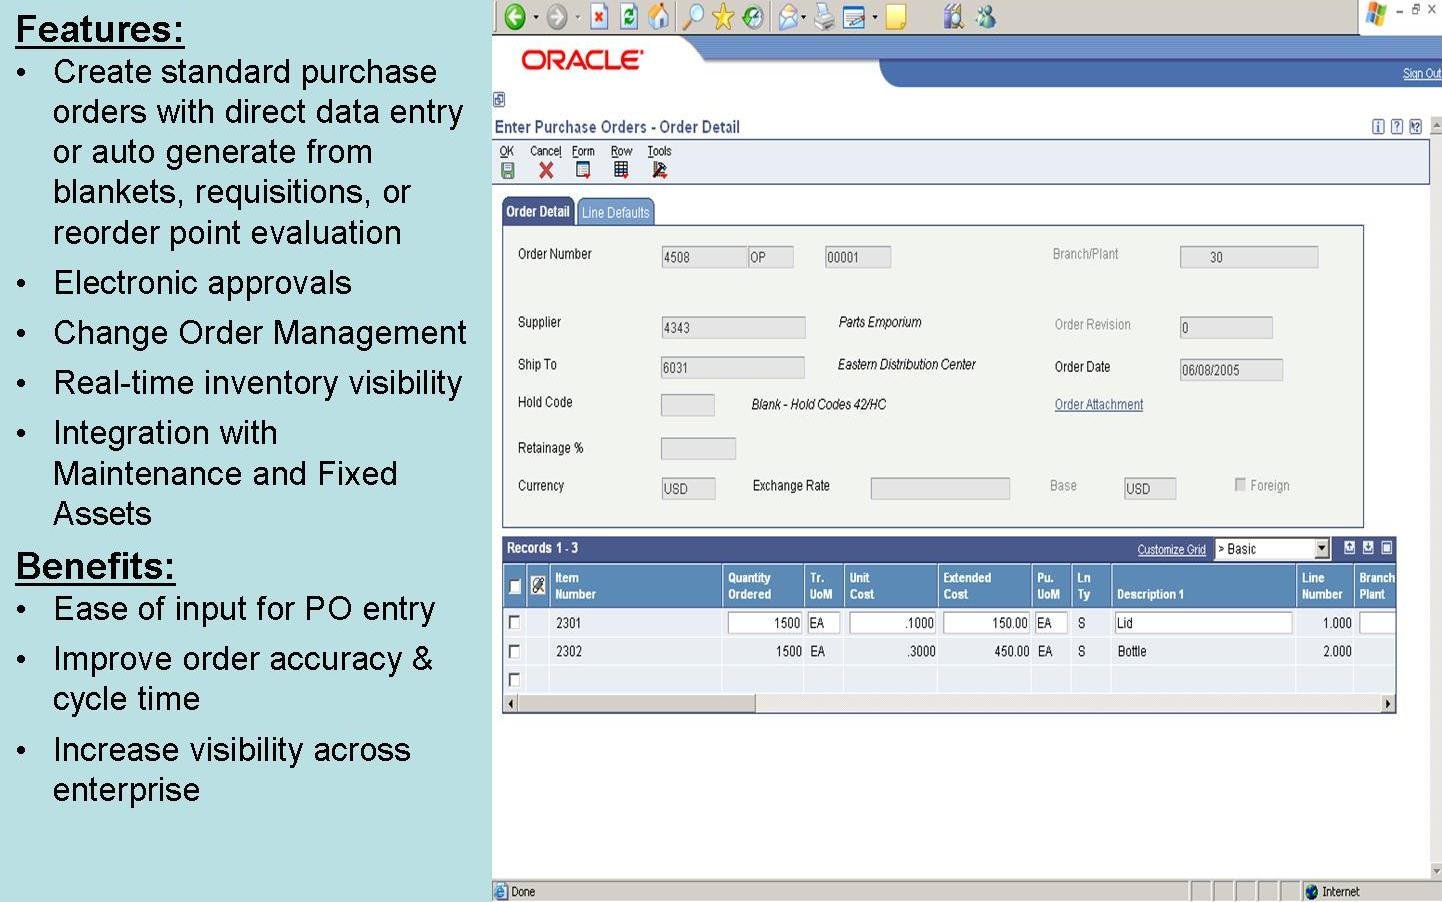 Oracle JD Edwards Distribution - Enter Purchase Order screen